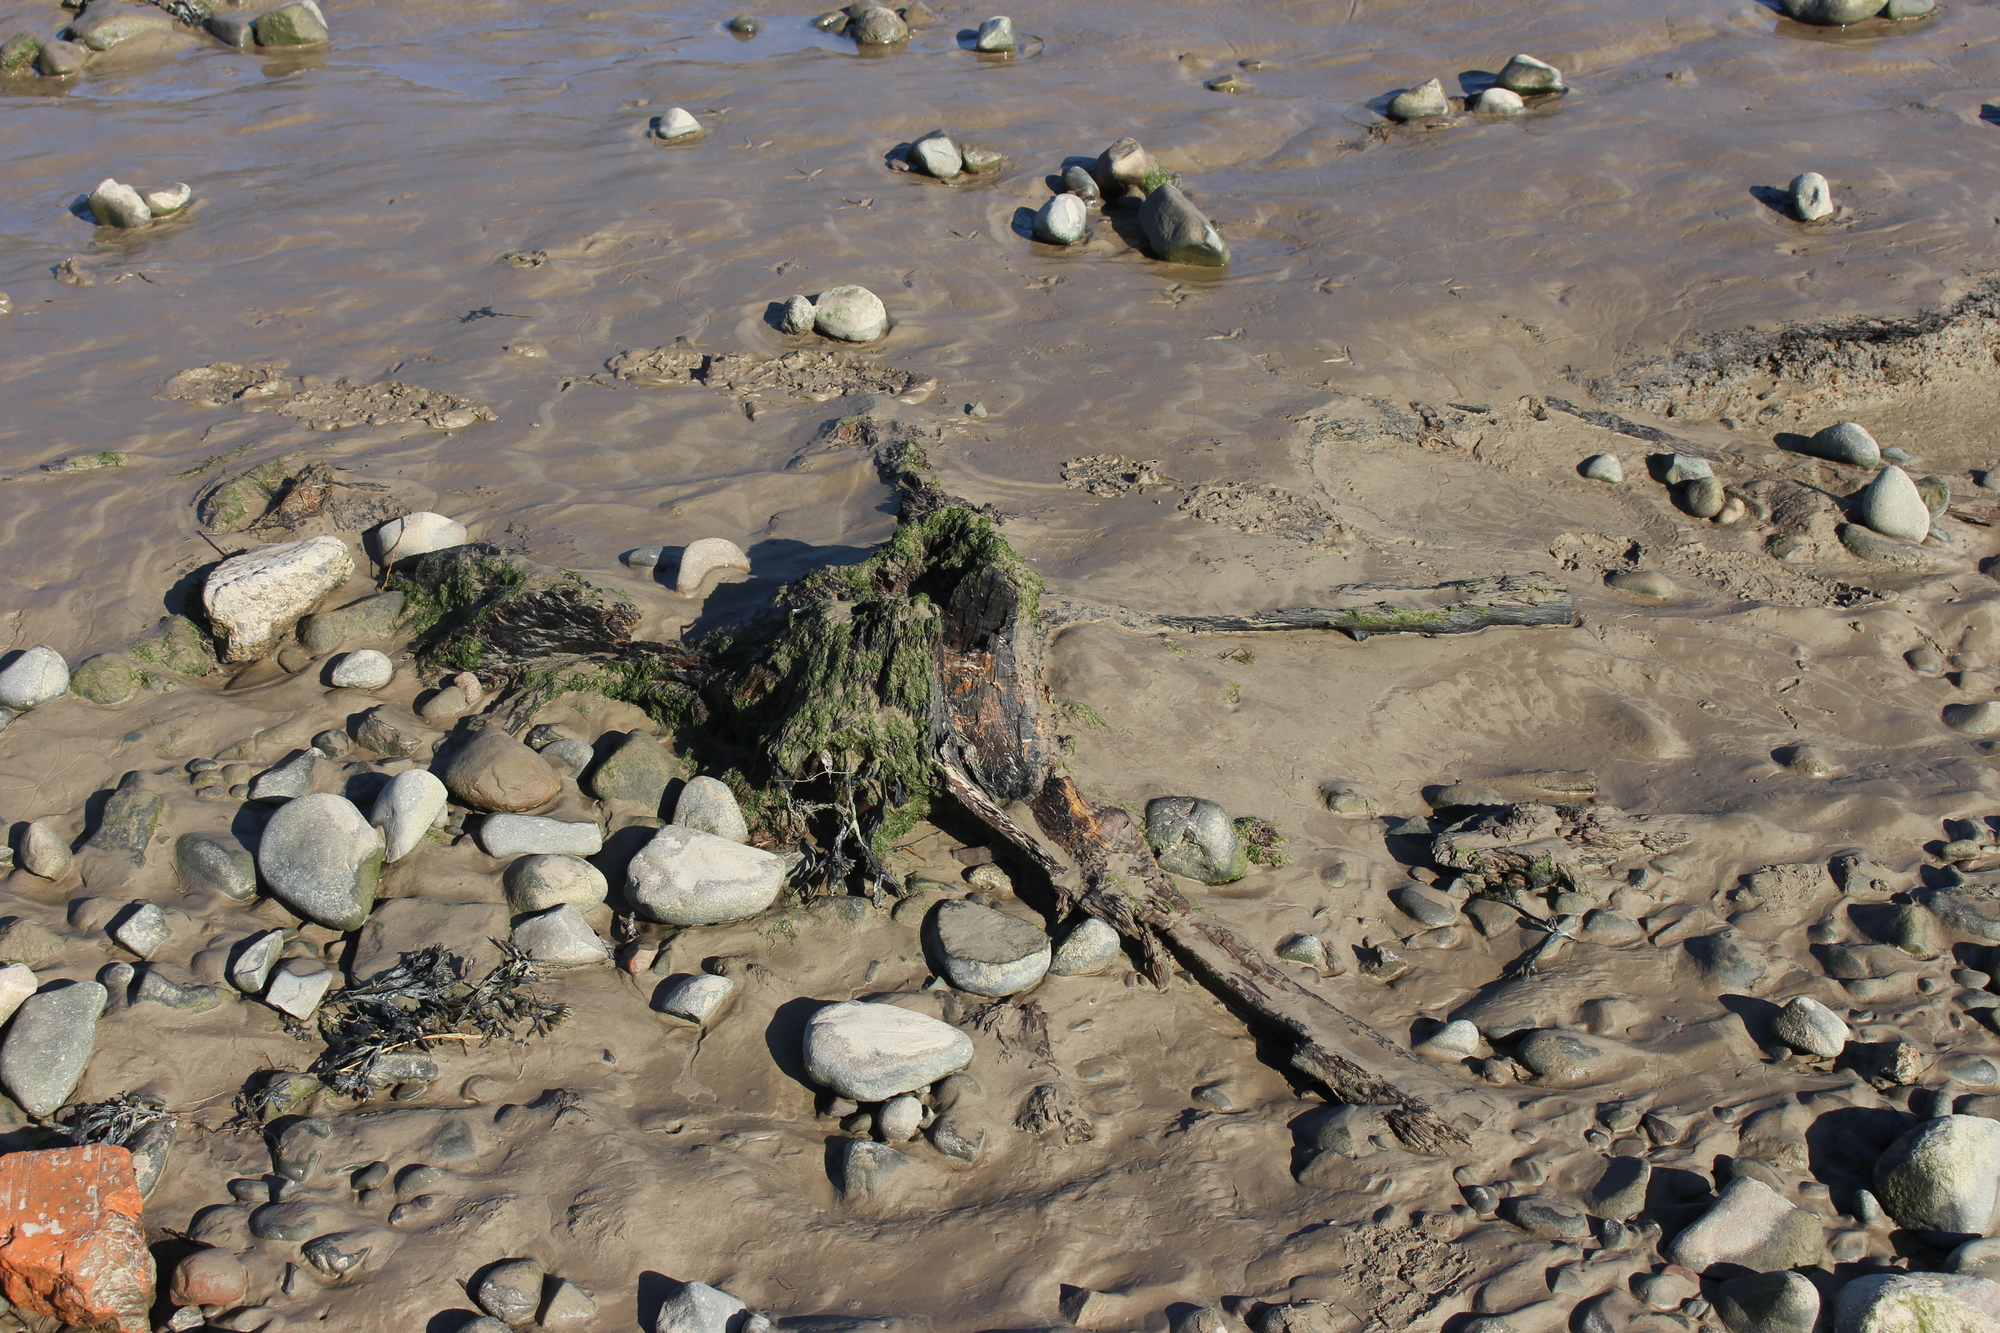 Close up of a sandy and silty beach with a tree stump and roots embedded in the sediment